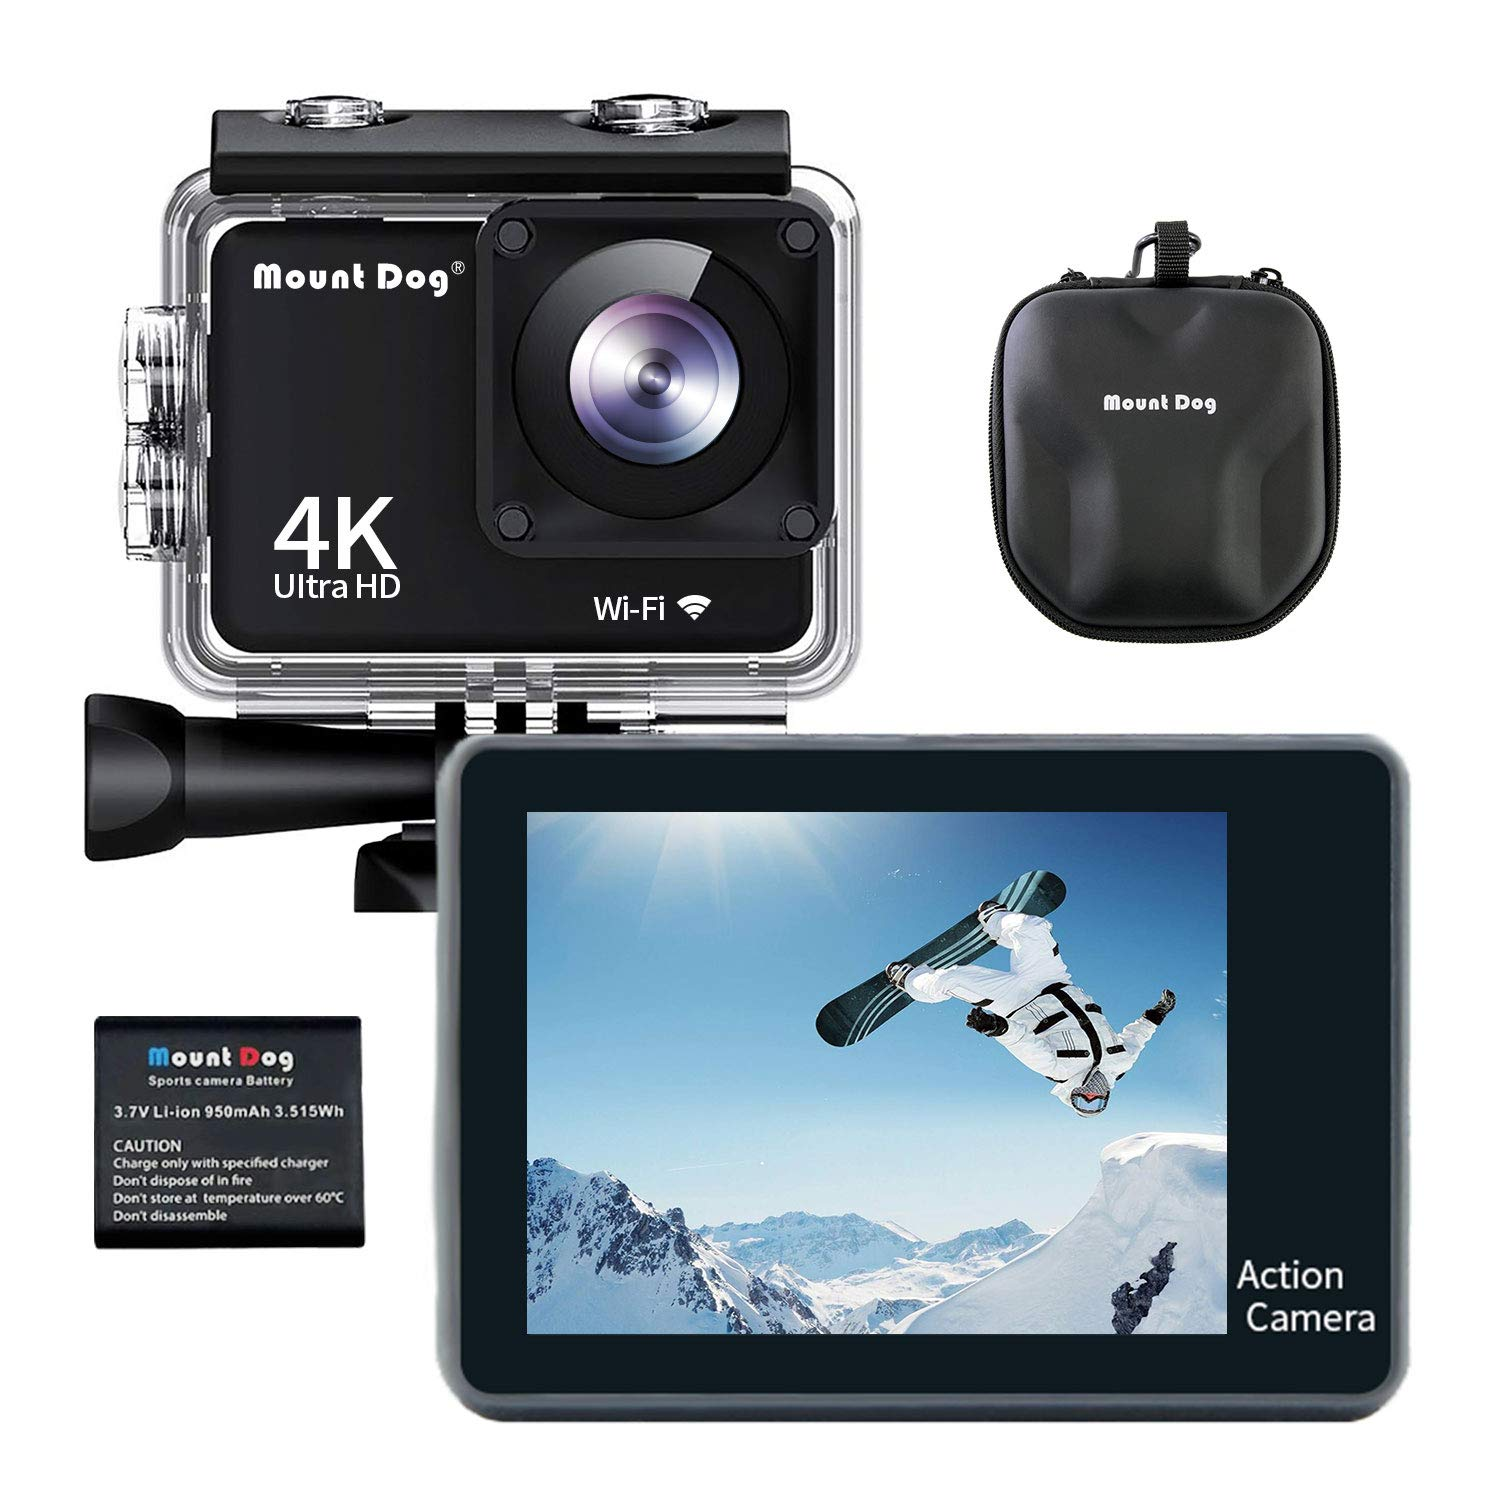 MOUNTDOG Action Camera Underwater Waterproof 30M Camera with 2'' LCD Wide Angle View 1080P Full HD Sports Action Camera with 10M WiFi Wireless Control and Portable Camera Bag